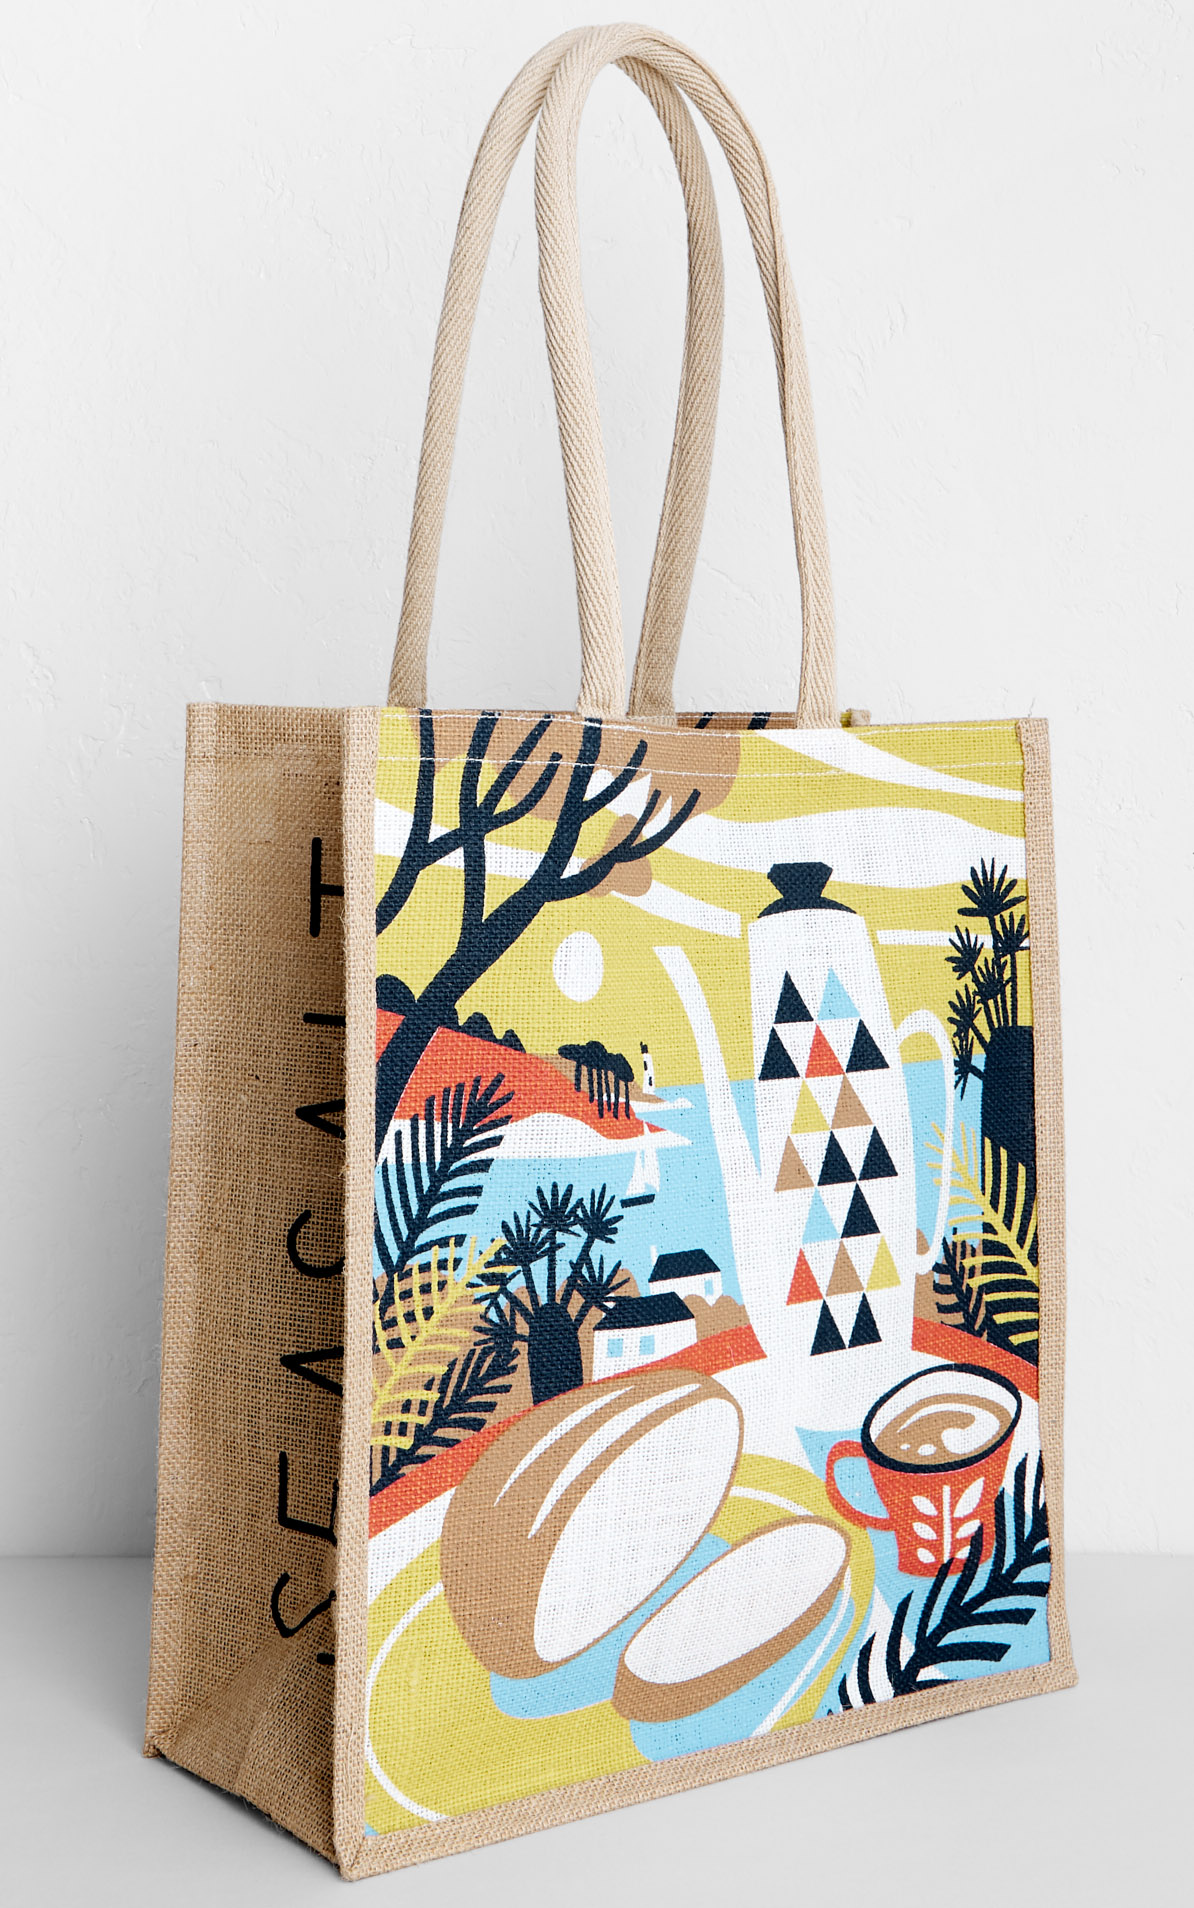 Jute bag with print design of bread loaf and mid-century coffee pot and cup, with tree ferns, pines and St Anthony's Head lighthouse in background. Inspired by a visit to Lamorran Gardens in St Mawes. By Matt Johnson for Seasalt Cornwall.